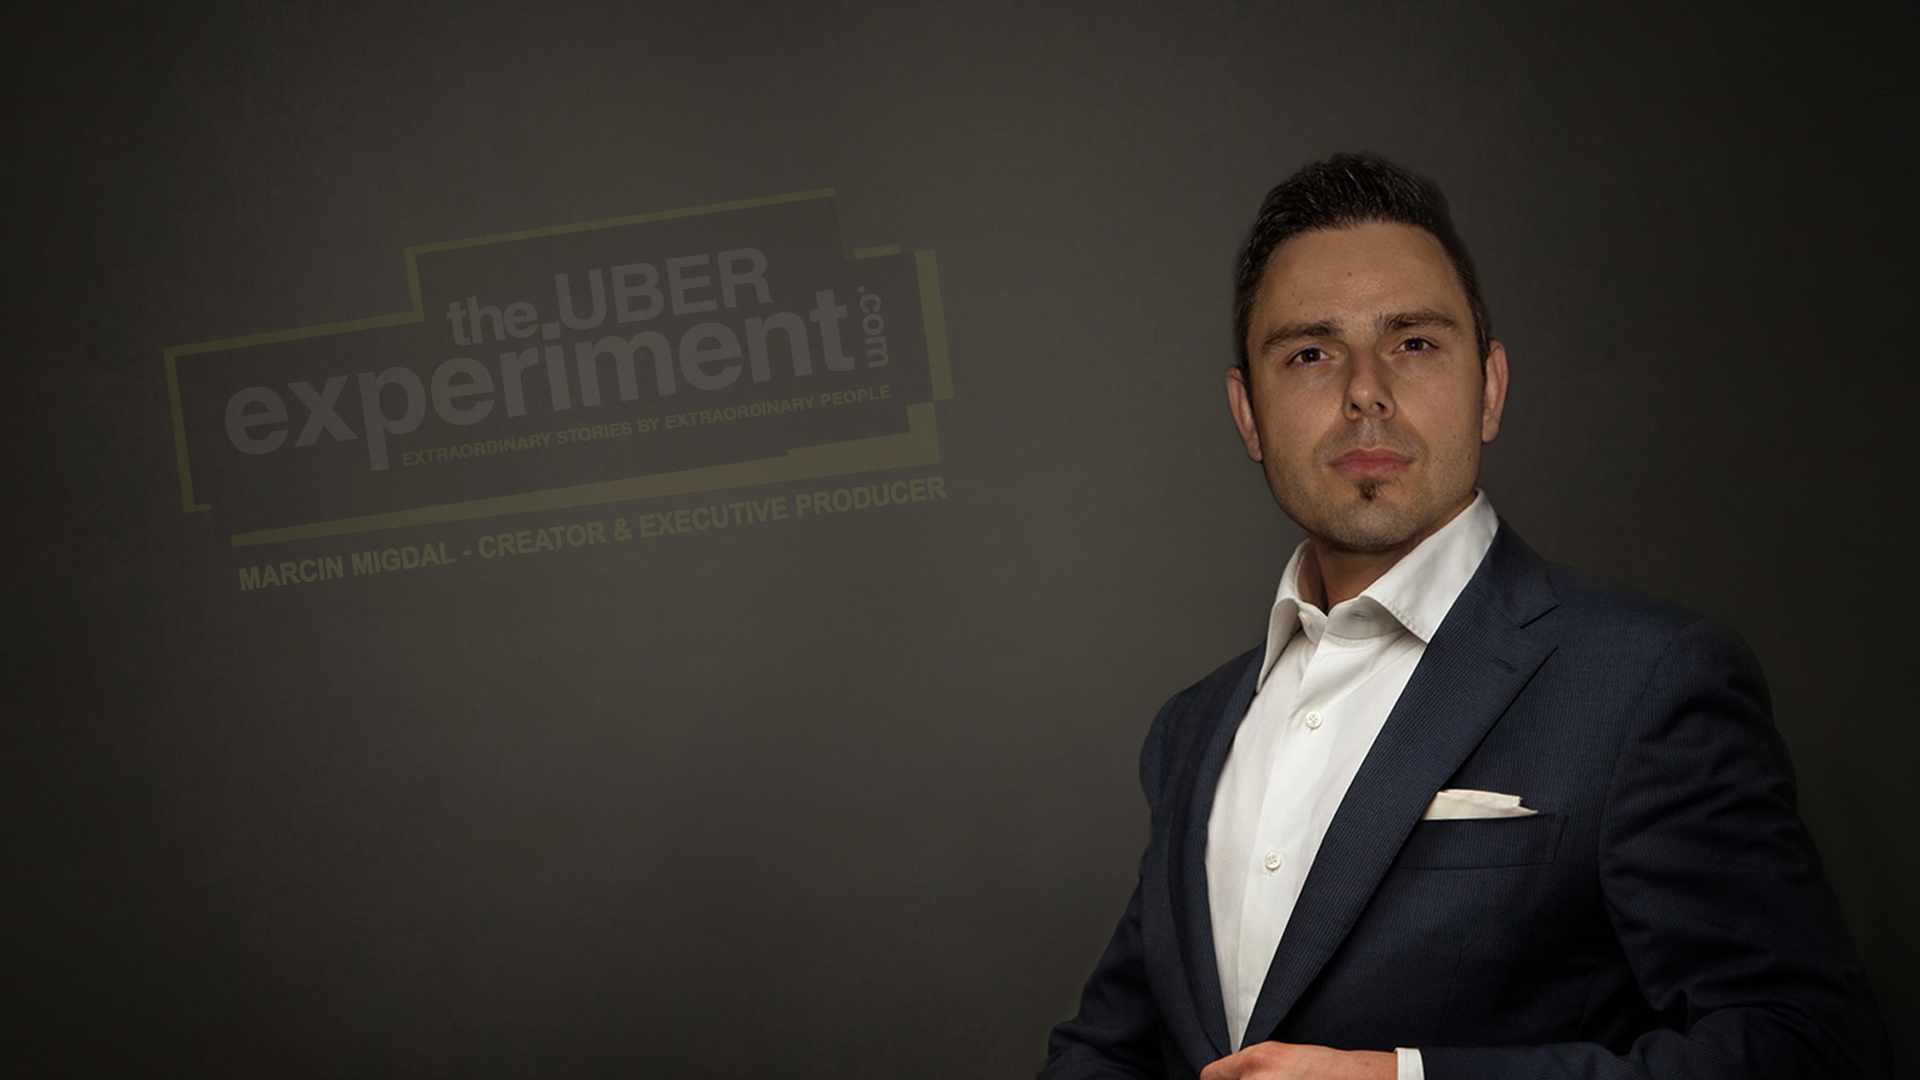 Marcin Migdal - The Uber Experiment Reality Show Producer, Brand Director & Host